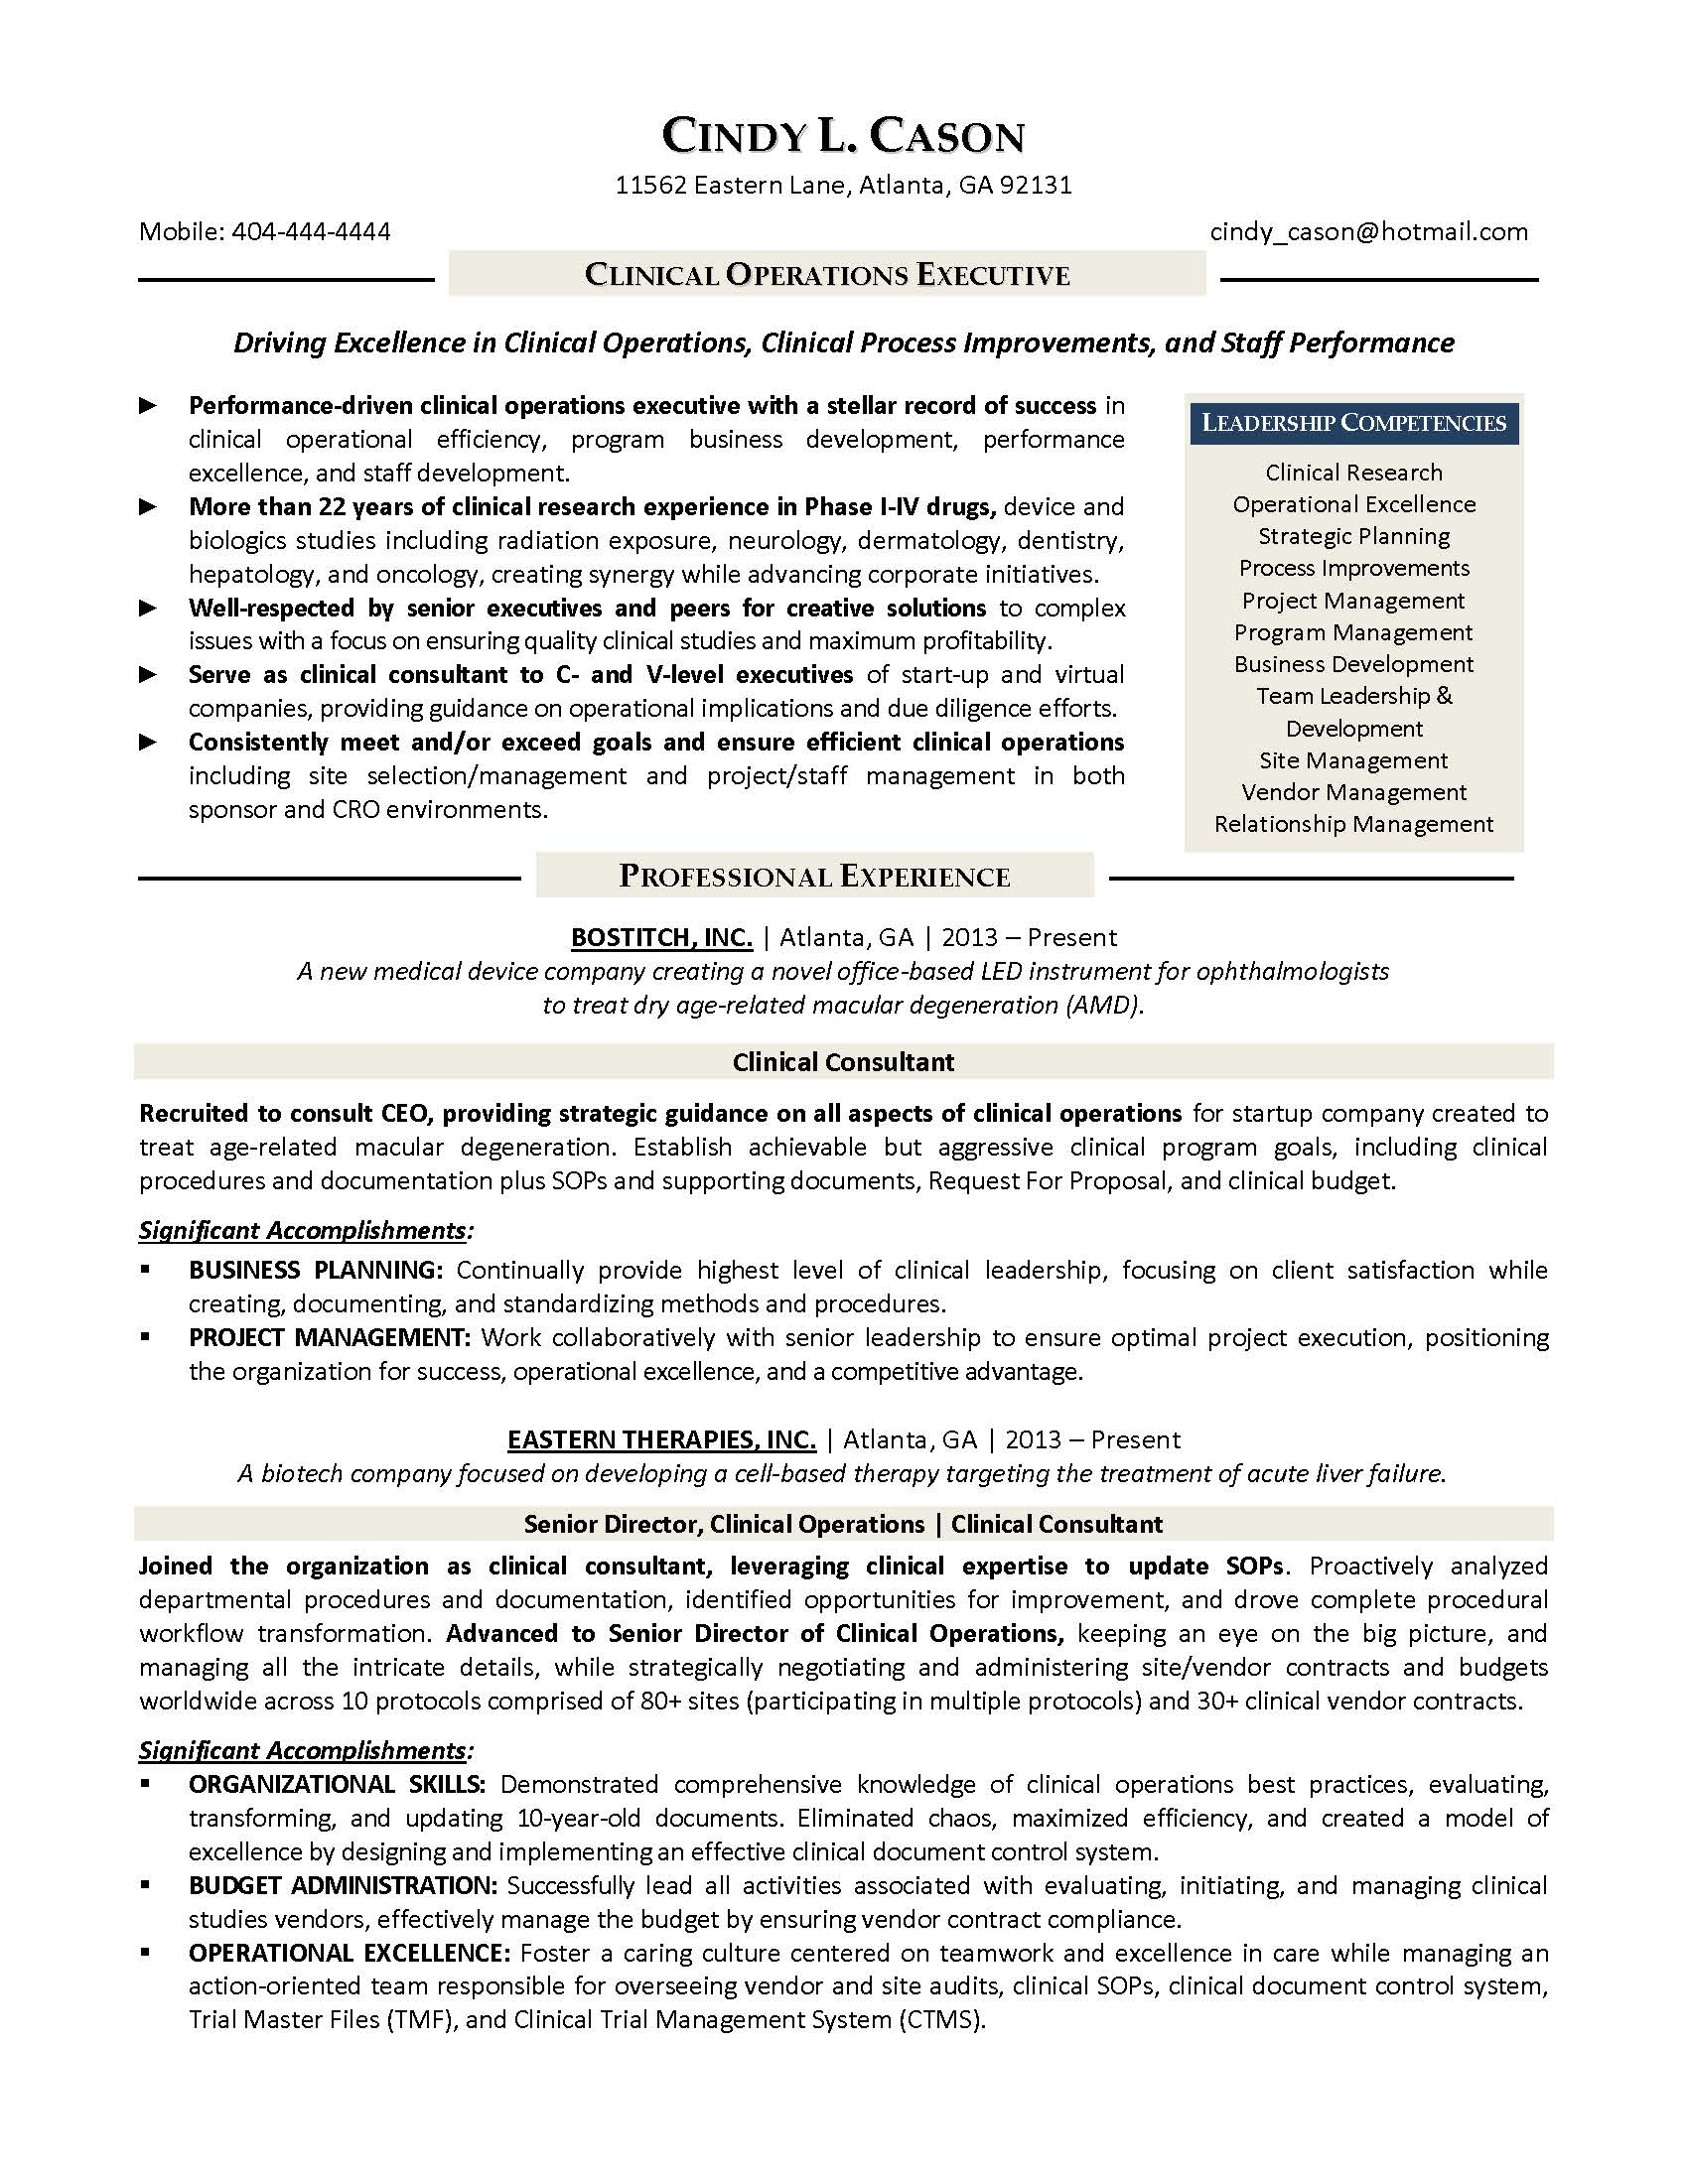 clinical operations executive resume sample provided by elite resume writing services